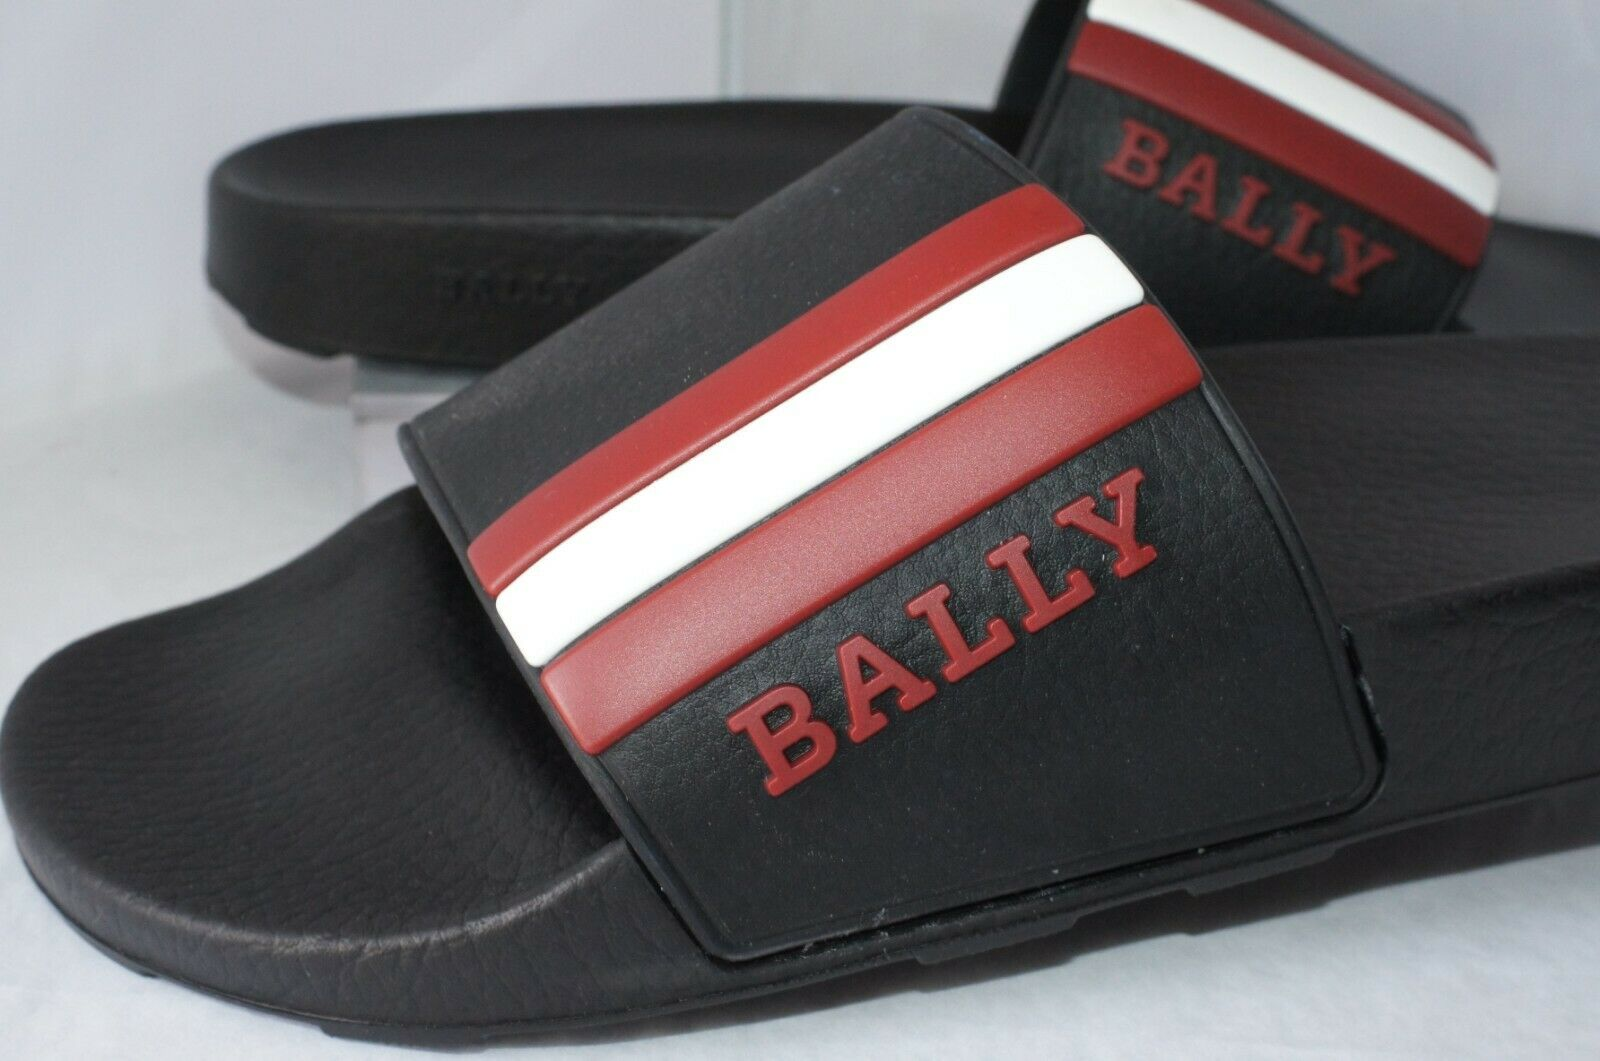 New Bally Men's Slide Garnet Sandals shoes Size 10 Black Rubber Slip Ons Sale